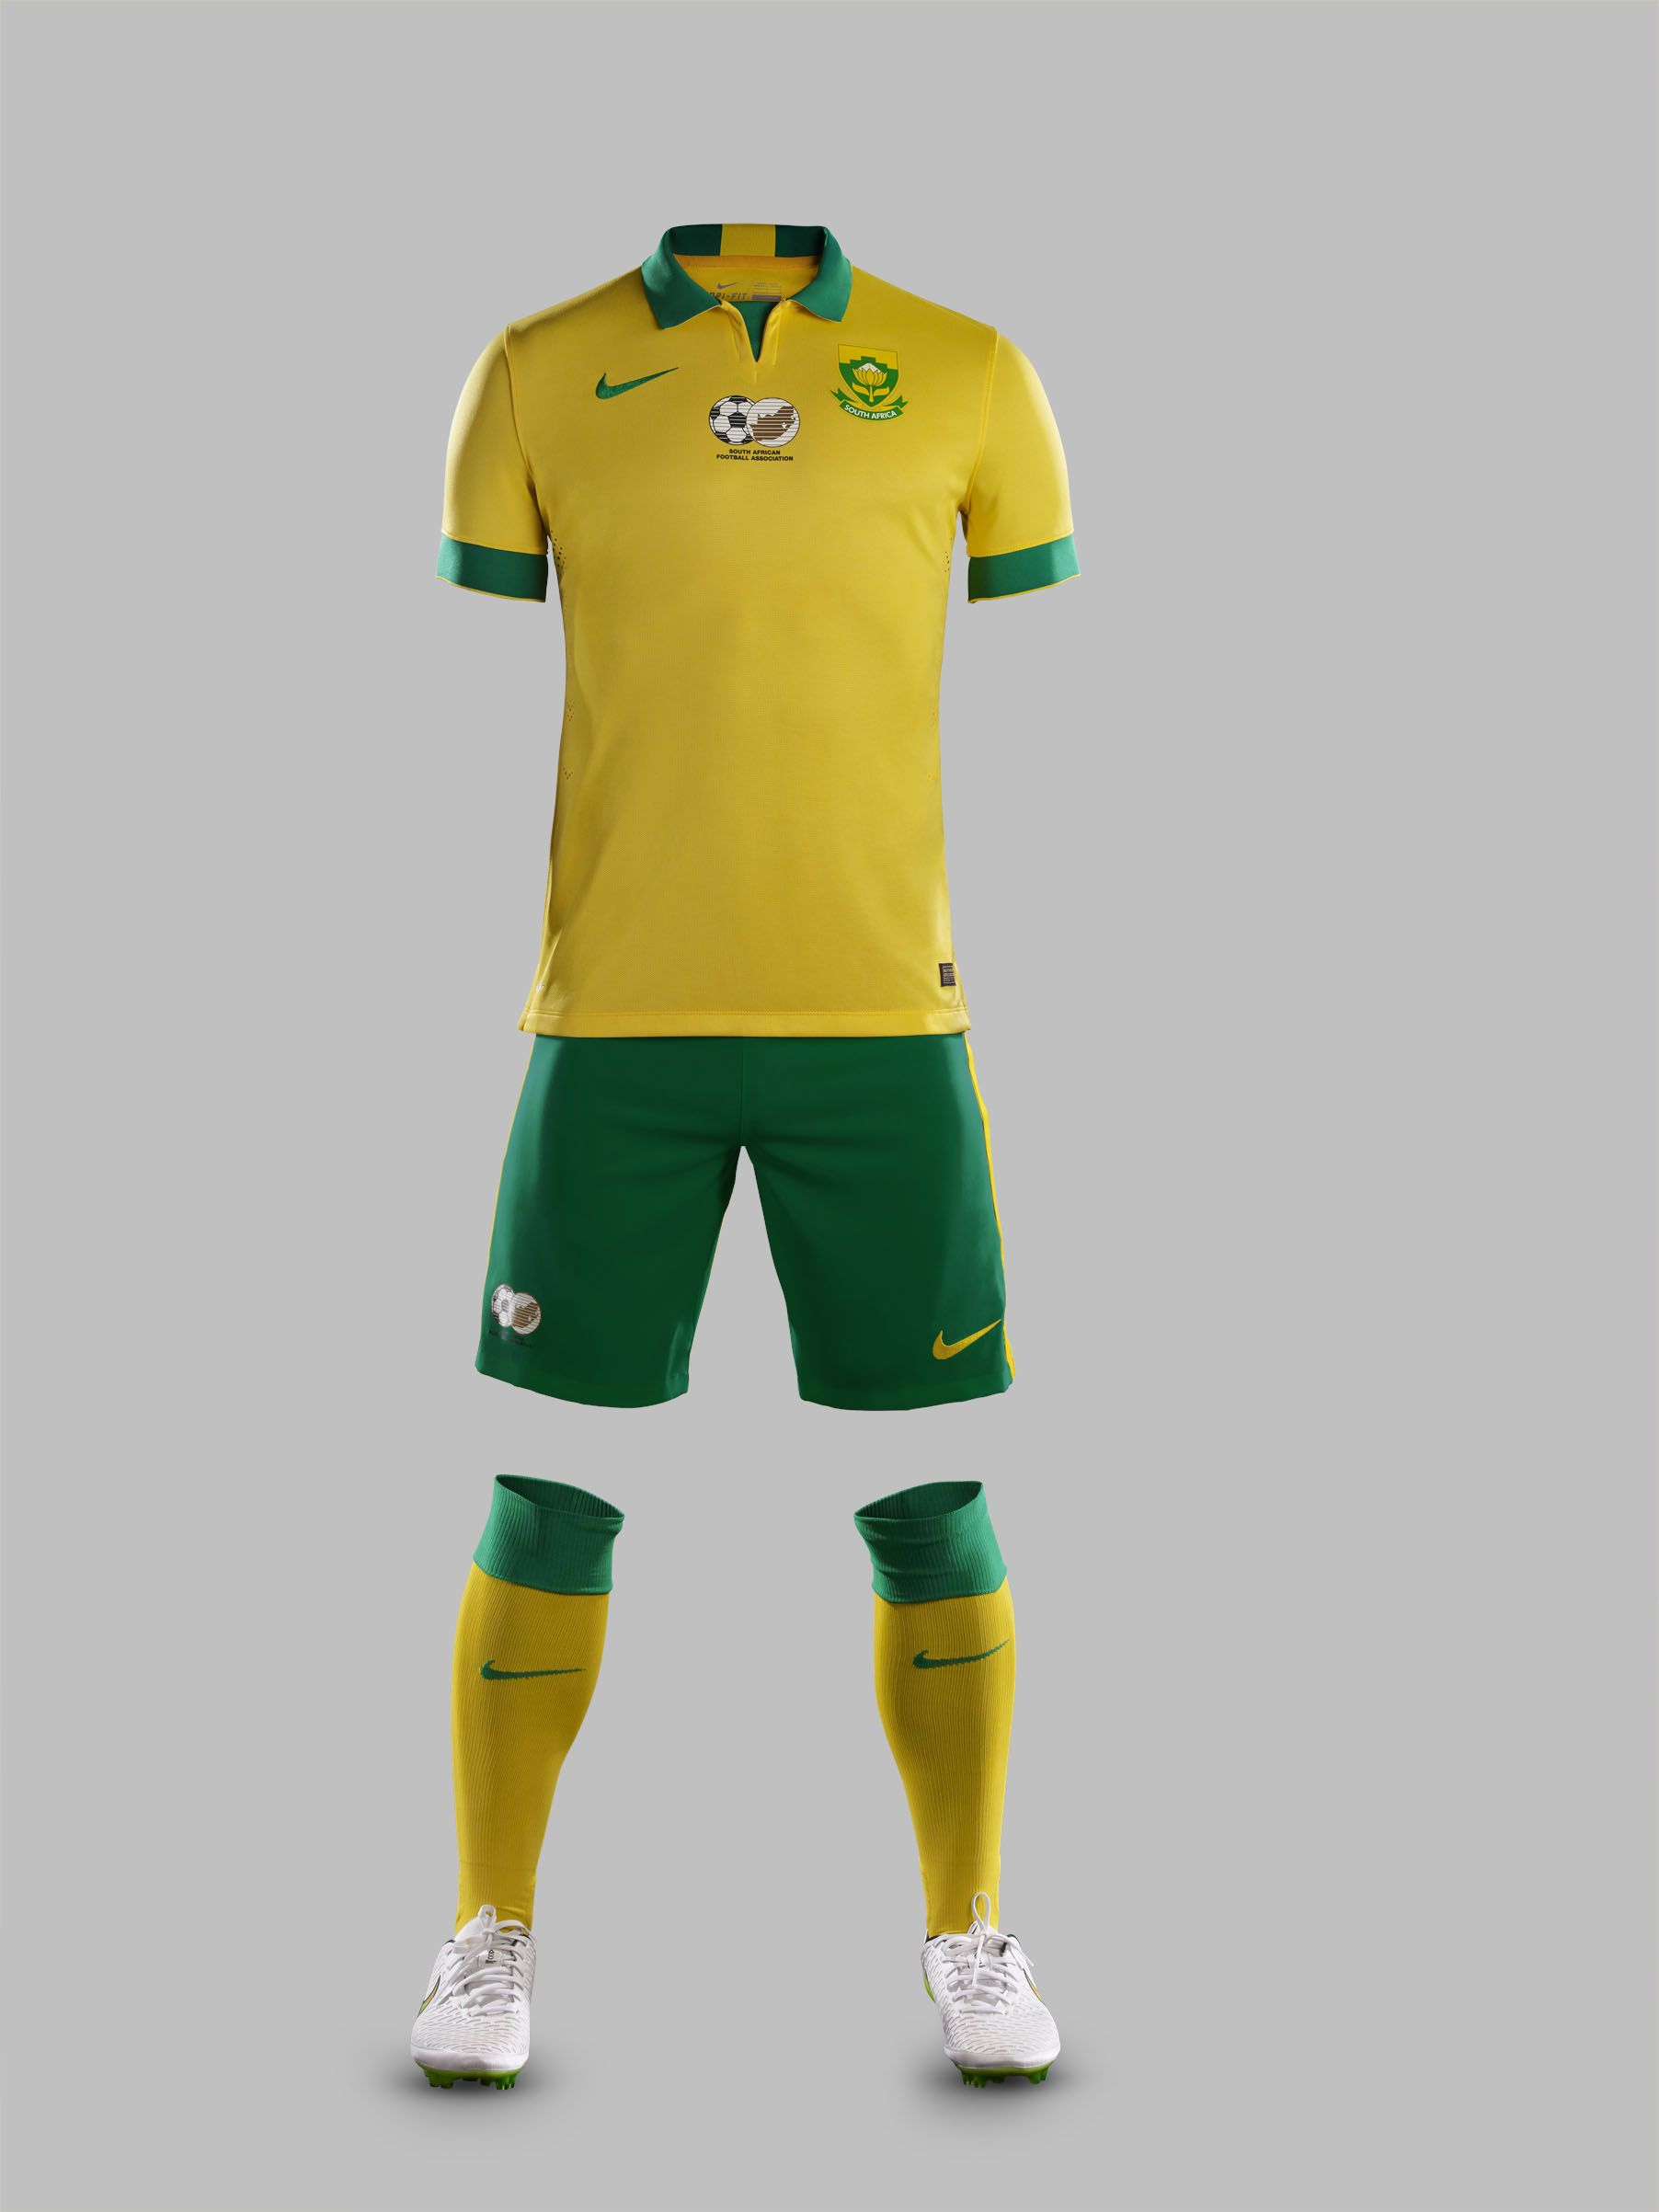 a5ce6f440f1 South African soccer team s new Nike home kit - 3 December 2014. Picture   Nike Football ZA